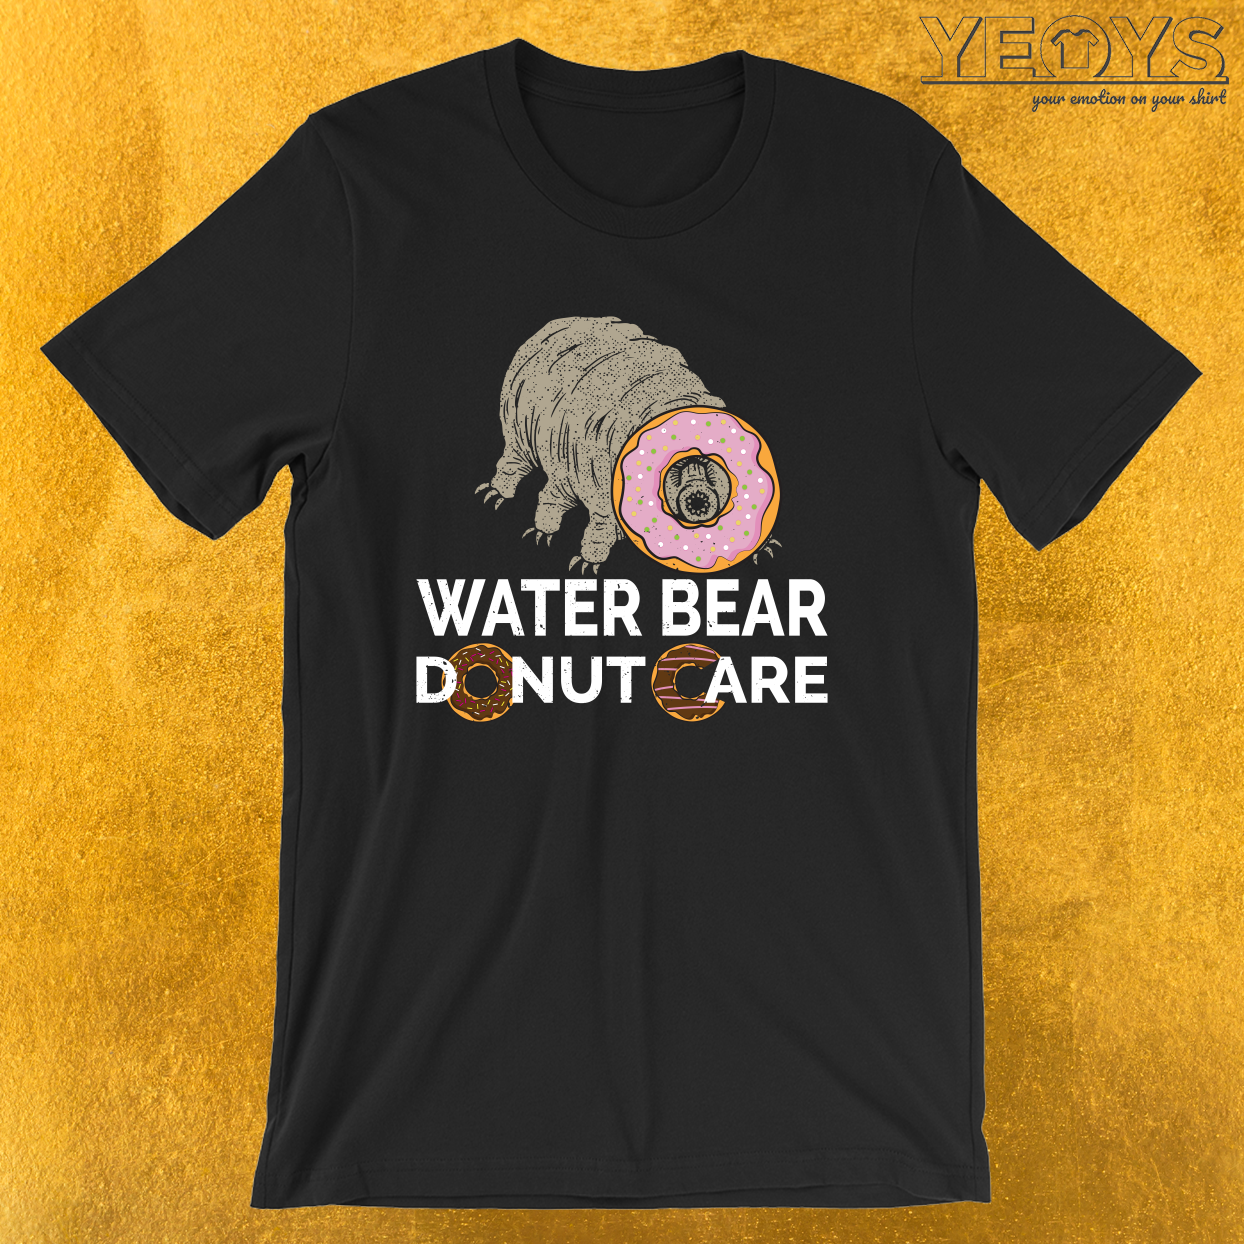 Water Bear Donut Care – Funny Micro-Animal Tardigrade Tee